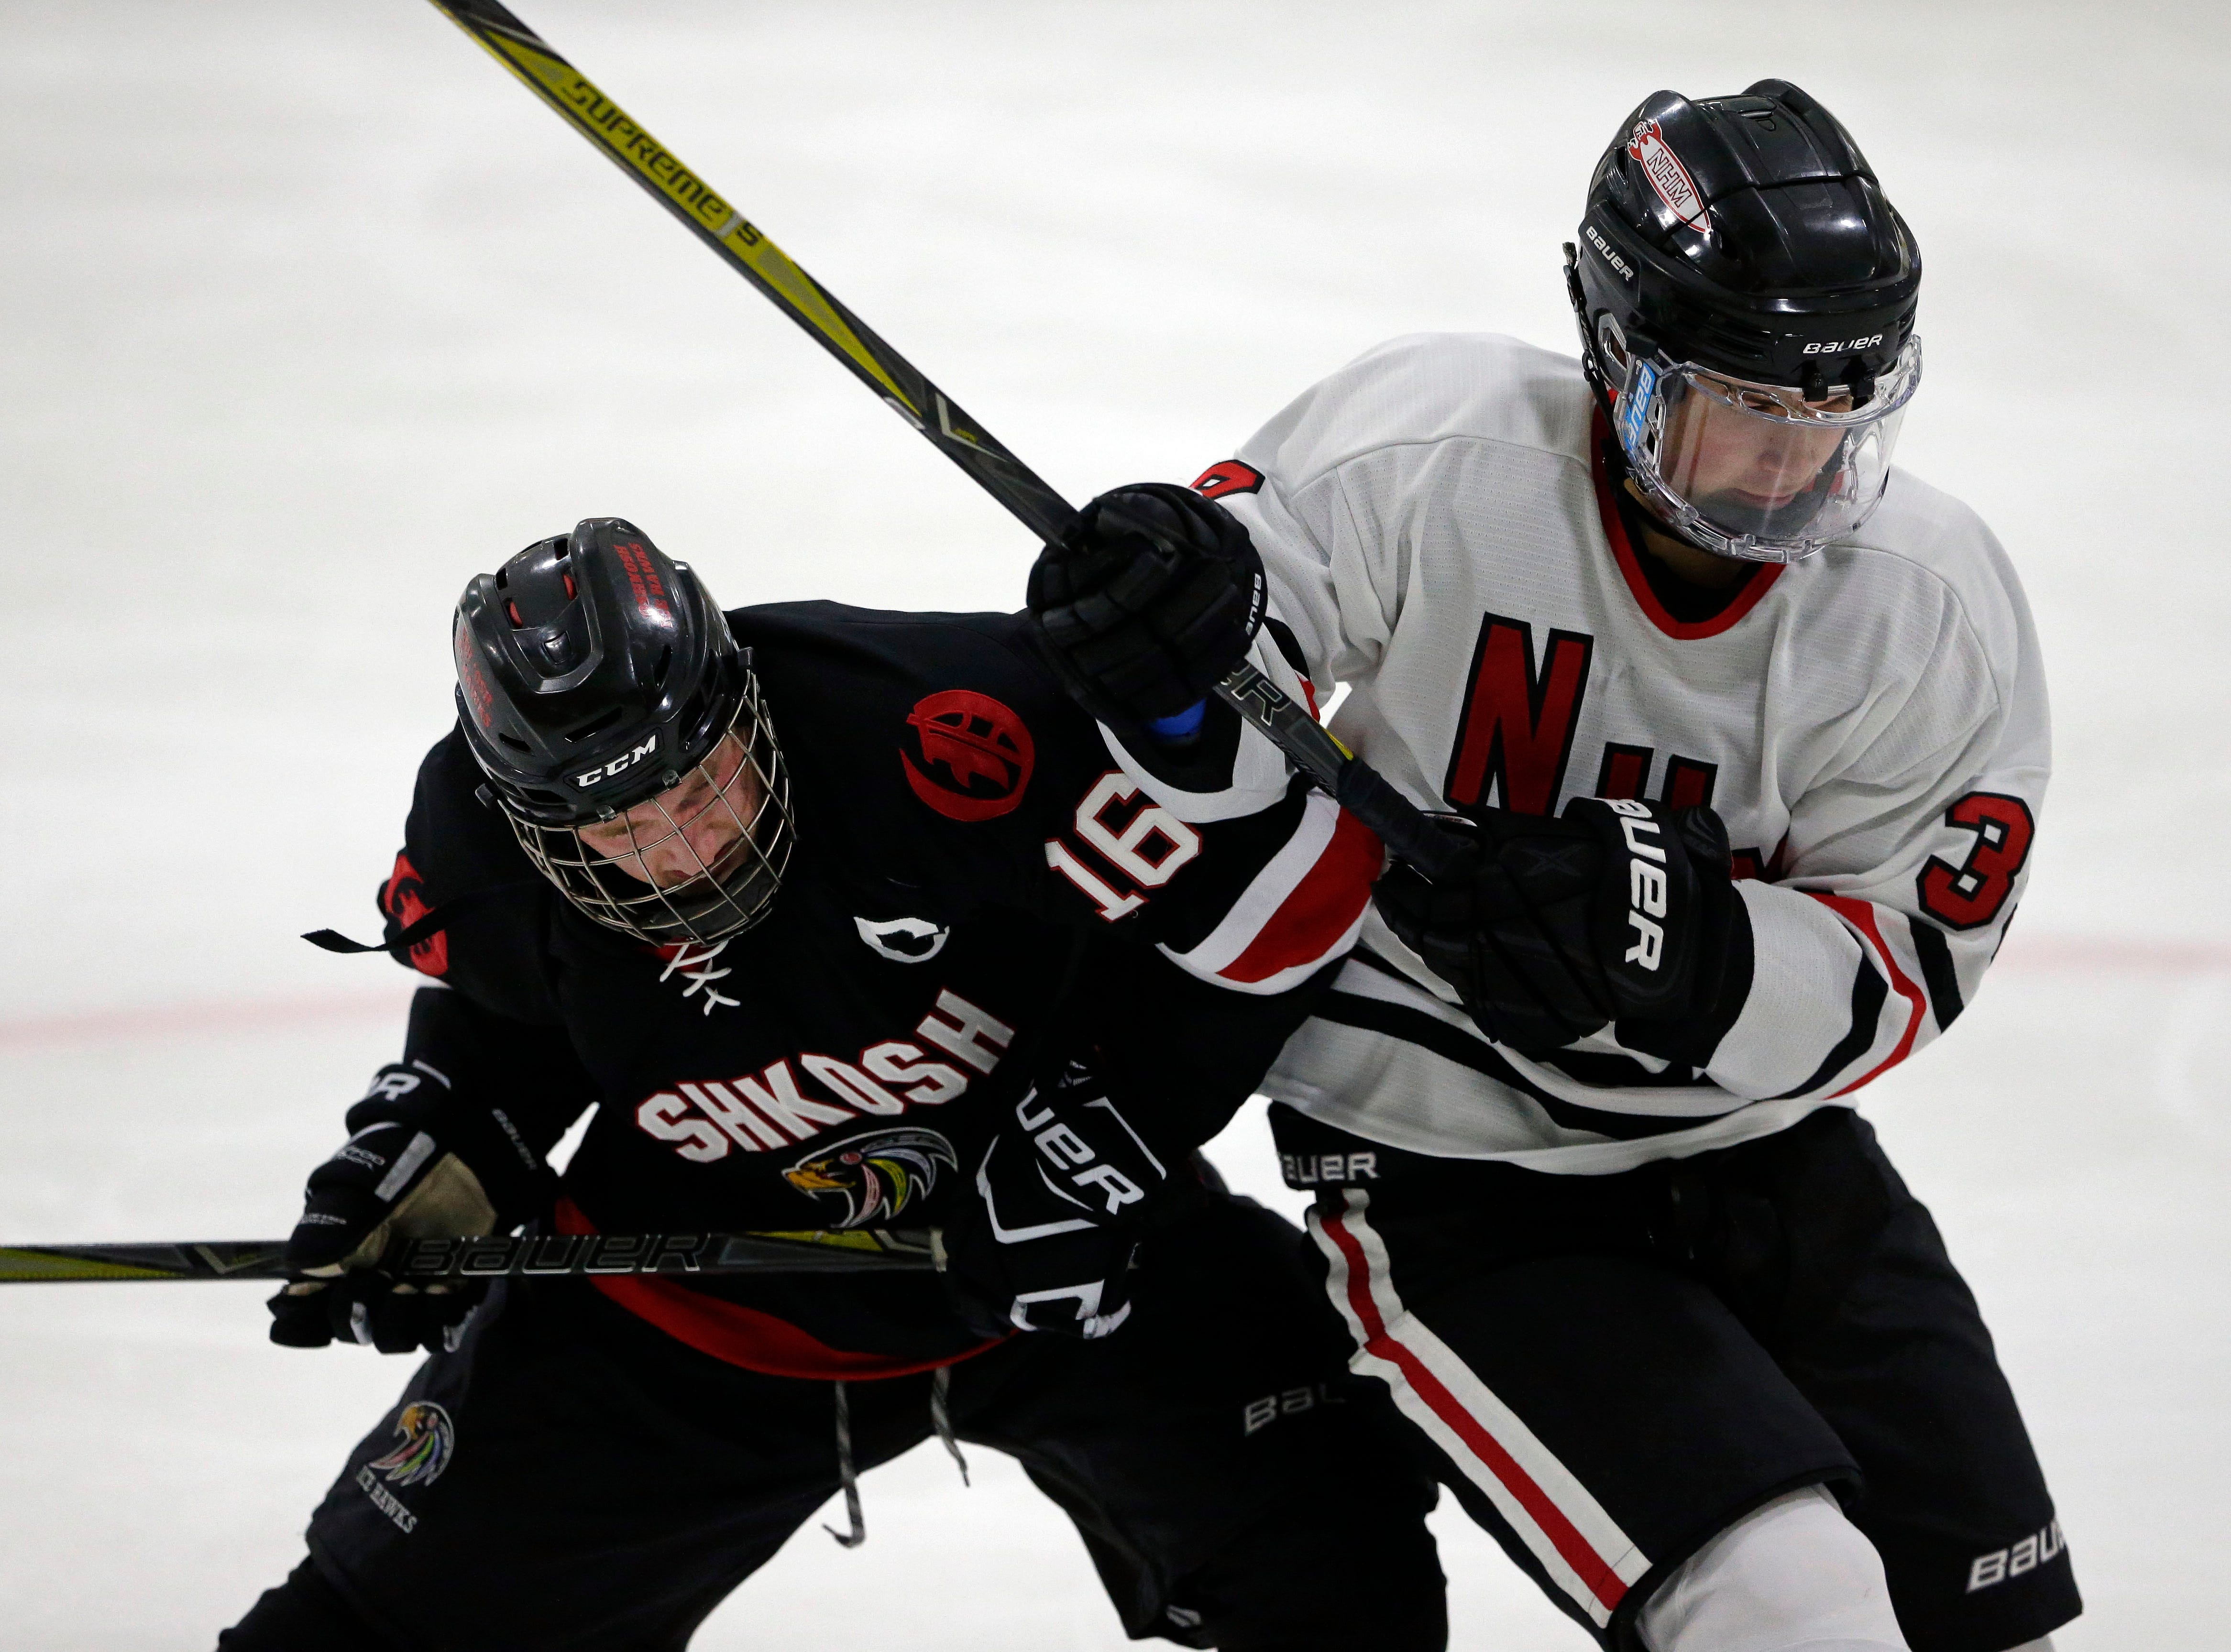 Kyle Jones of Oshkosh battles with Myles Tesky of Neenah/Hortonville/Menasha in a Badgerland Conference hockey game Tuesday, December 4, 2018, at Tri-County Ice Arena in Fox Crossing, Wis.Ron Page/USA TODAY NETWORK-Wisconsin